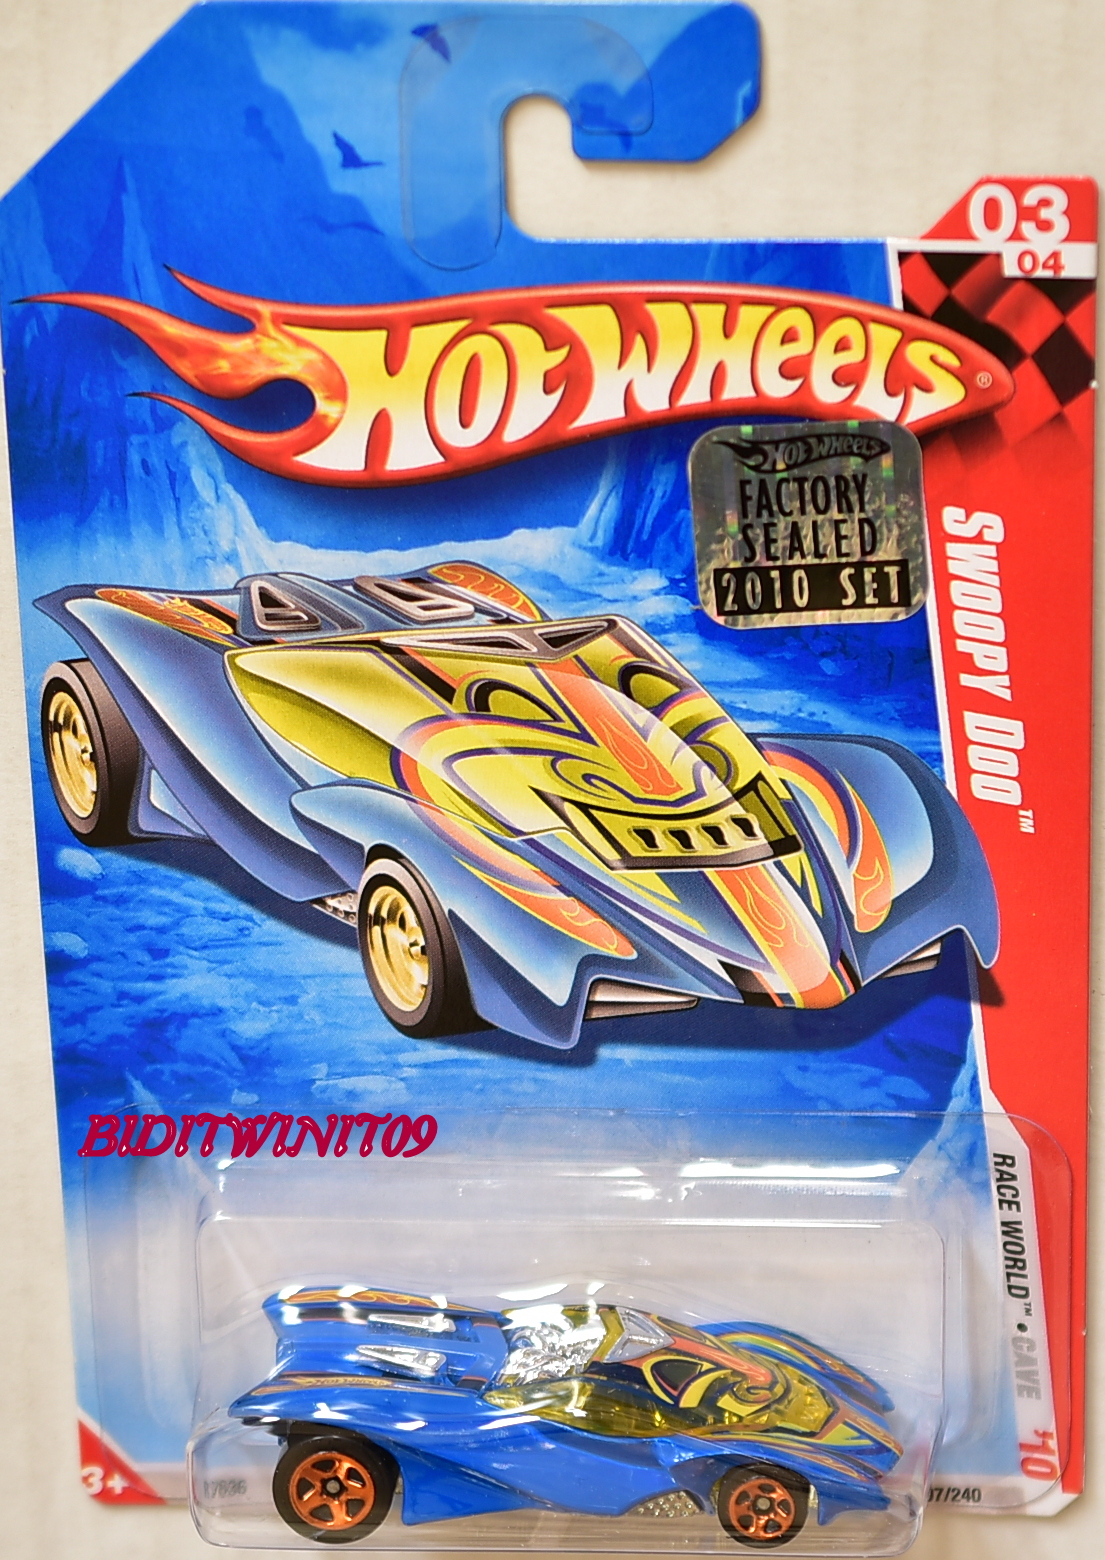 HOT WHEELS 2010 RACE WORLD SWOOPY DOO #03/04 FACTORY SEALED E+